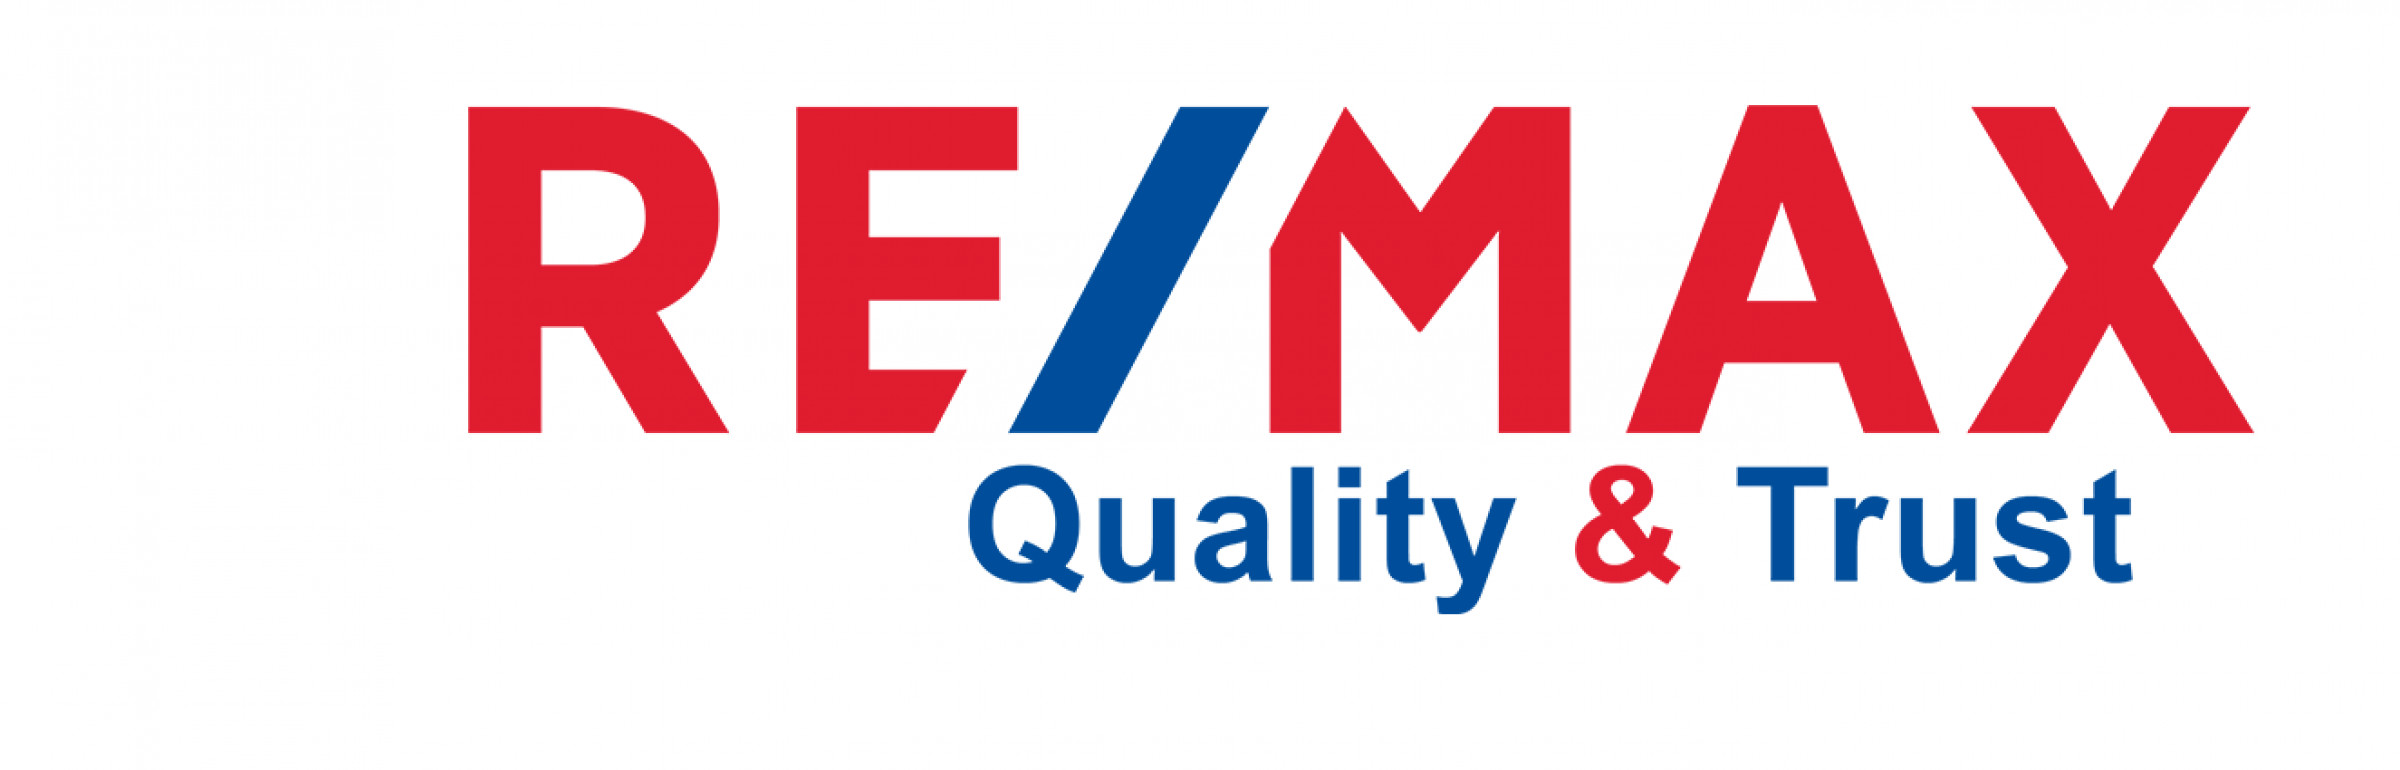 Banner Remax Quality & Trust